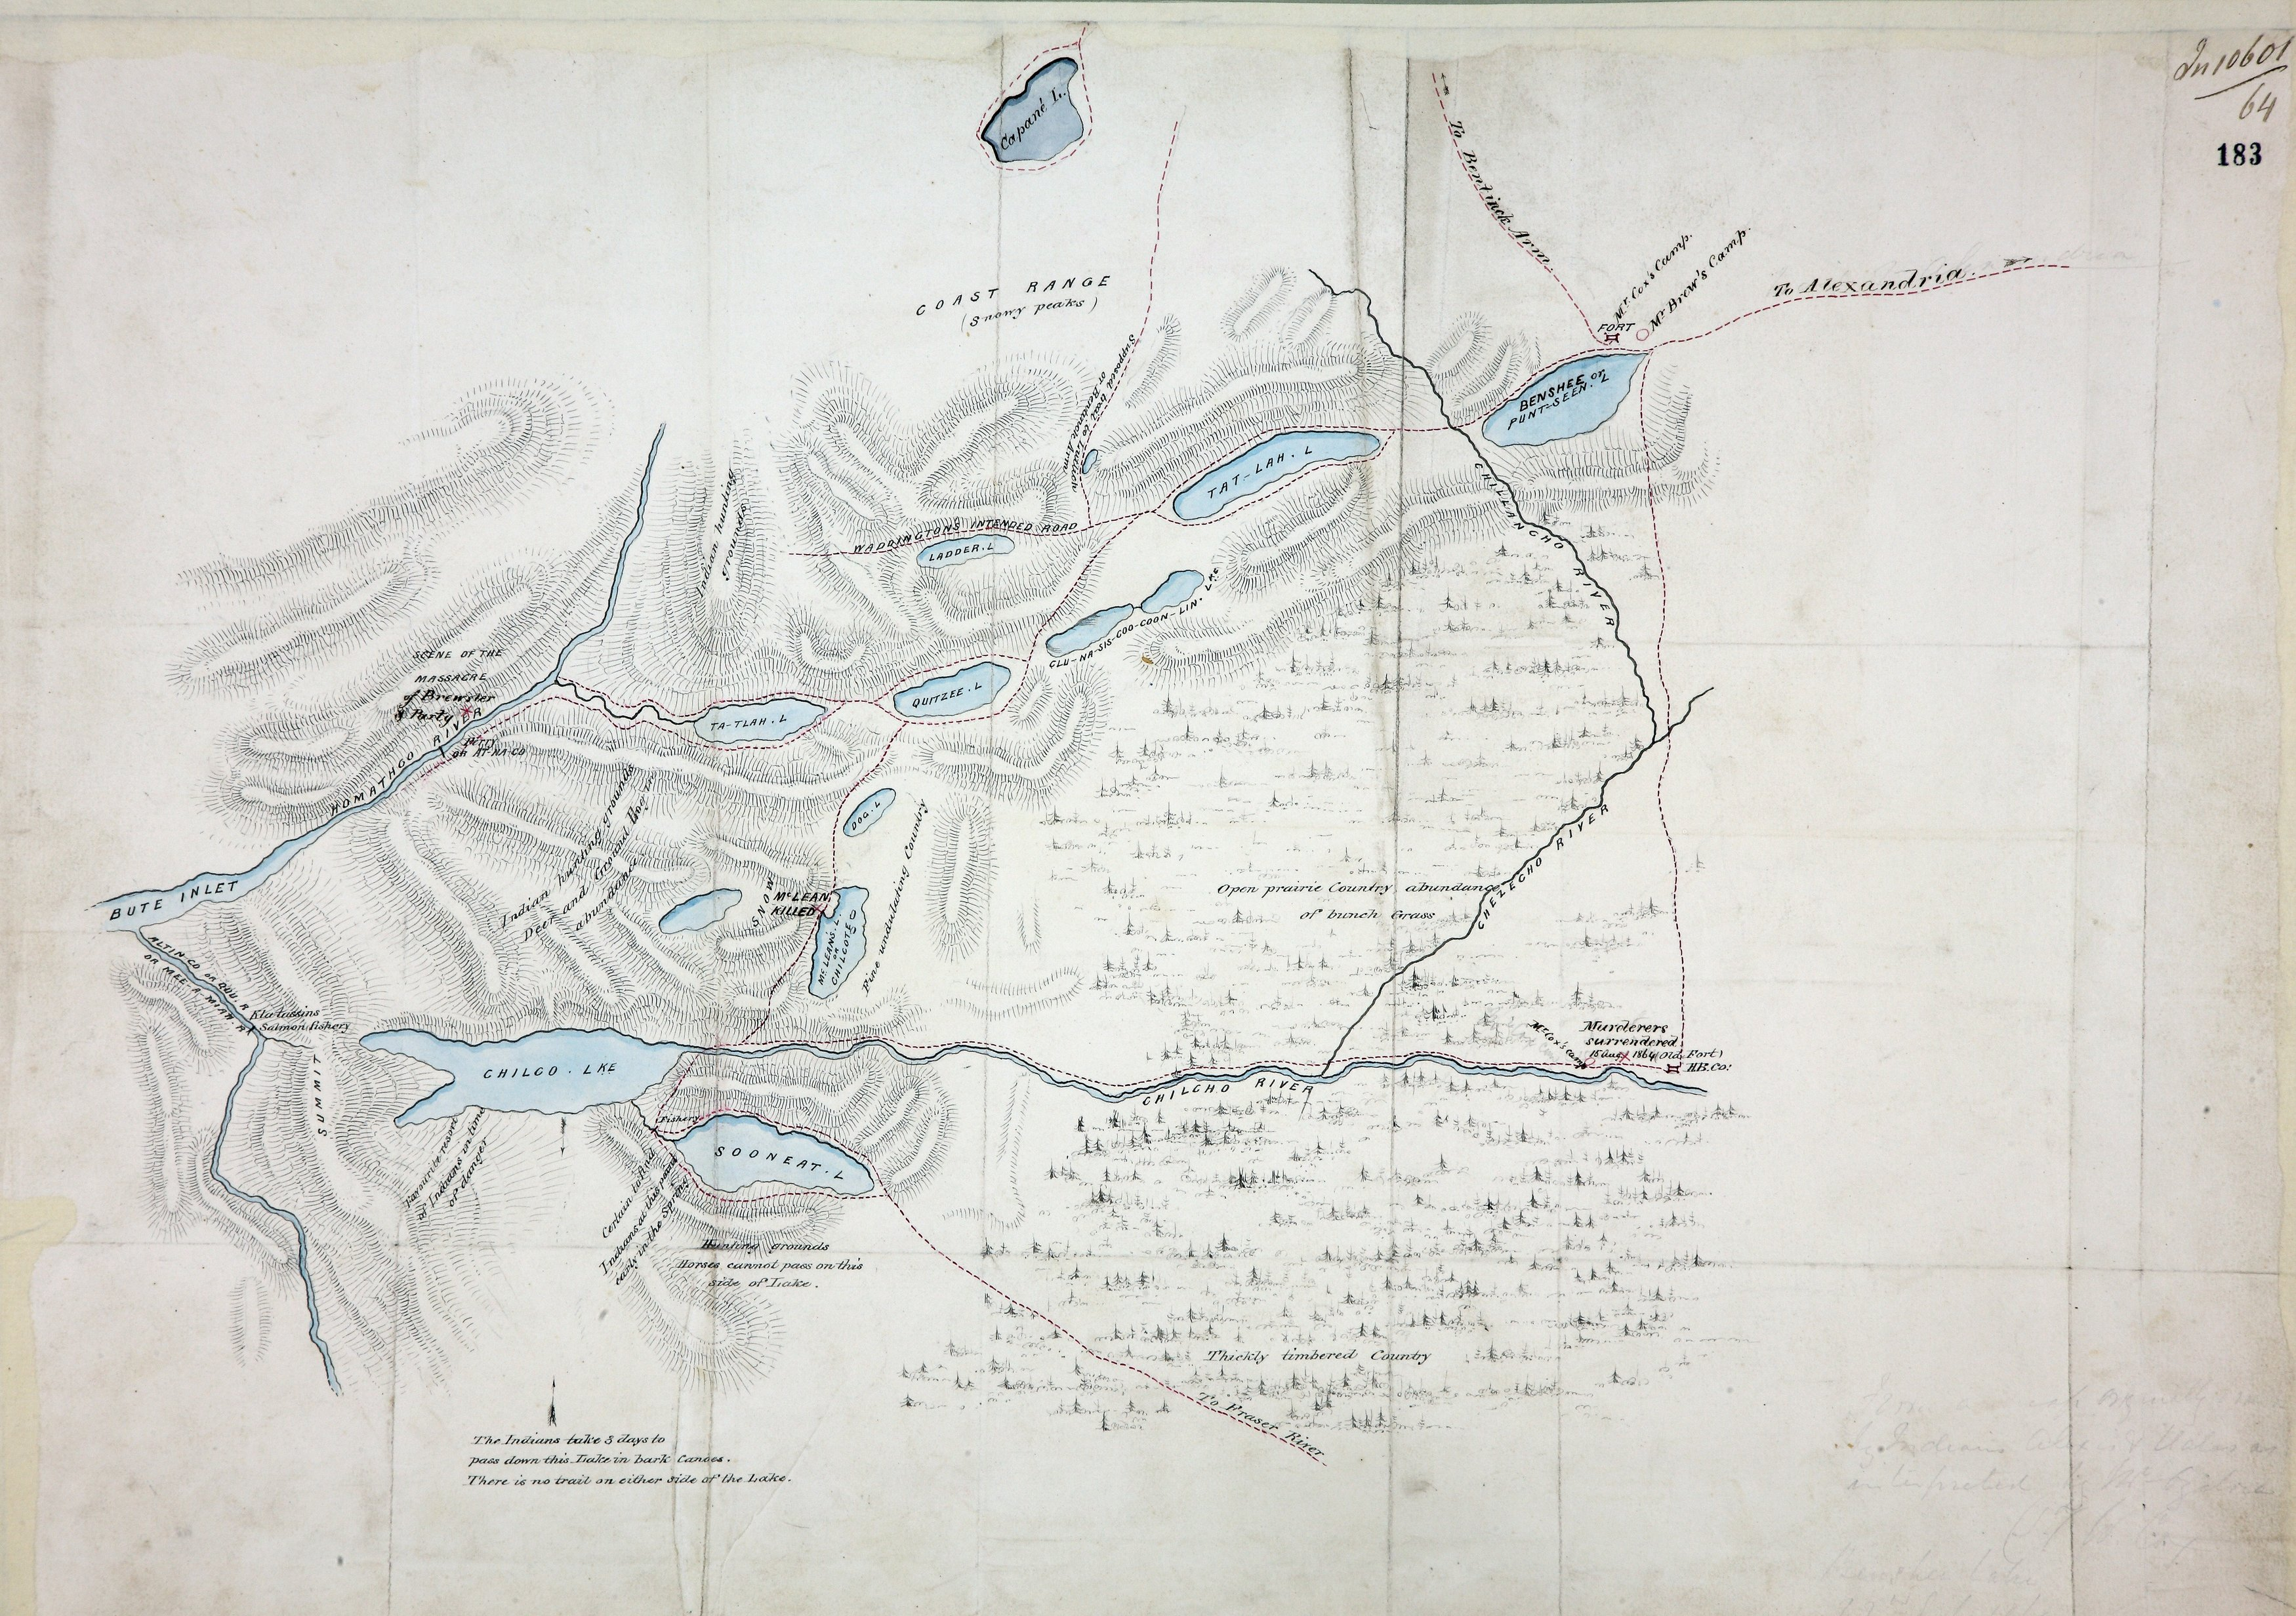 Sketch map of the country north and east of Bute Inlet to the Chilanko, Chezech and Chilko Rivers.